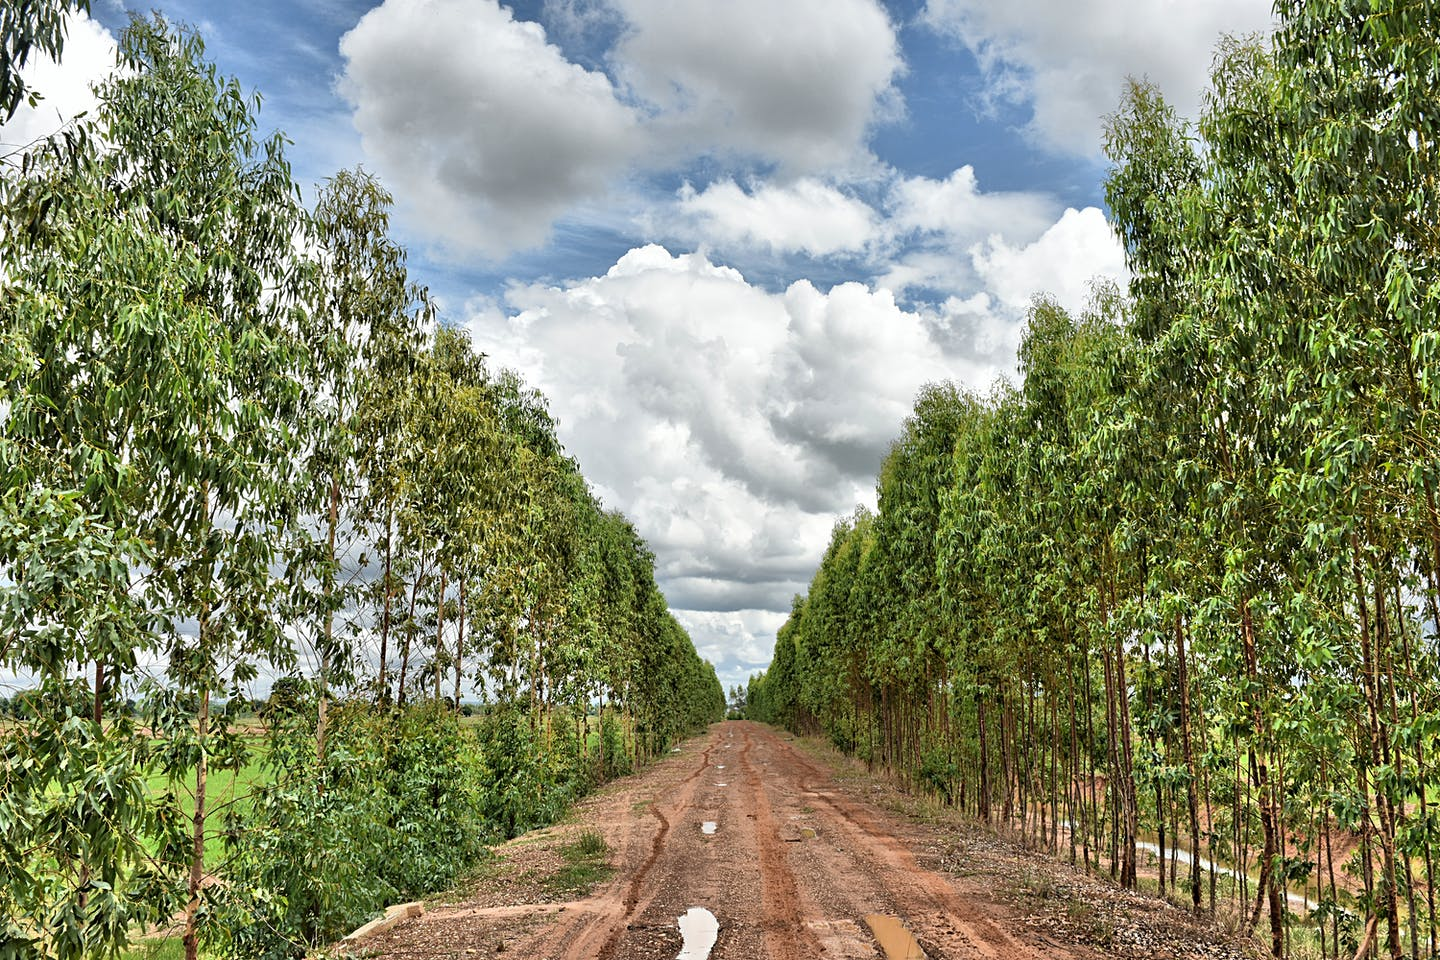 Trees line a dirt track in Thailand.